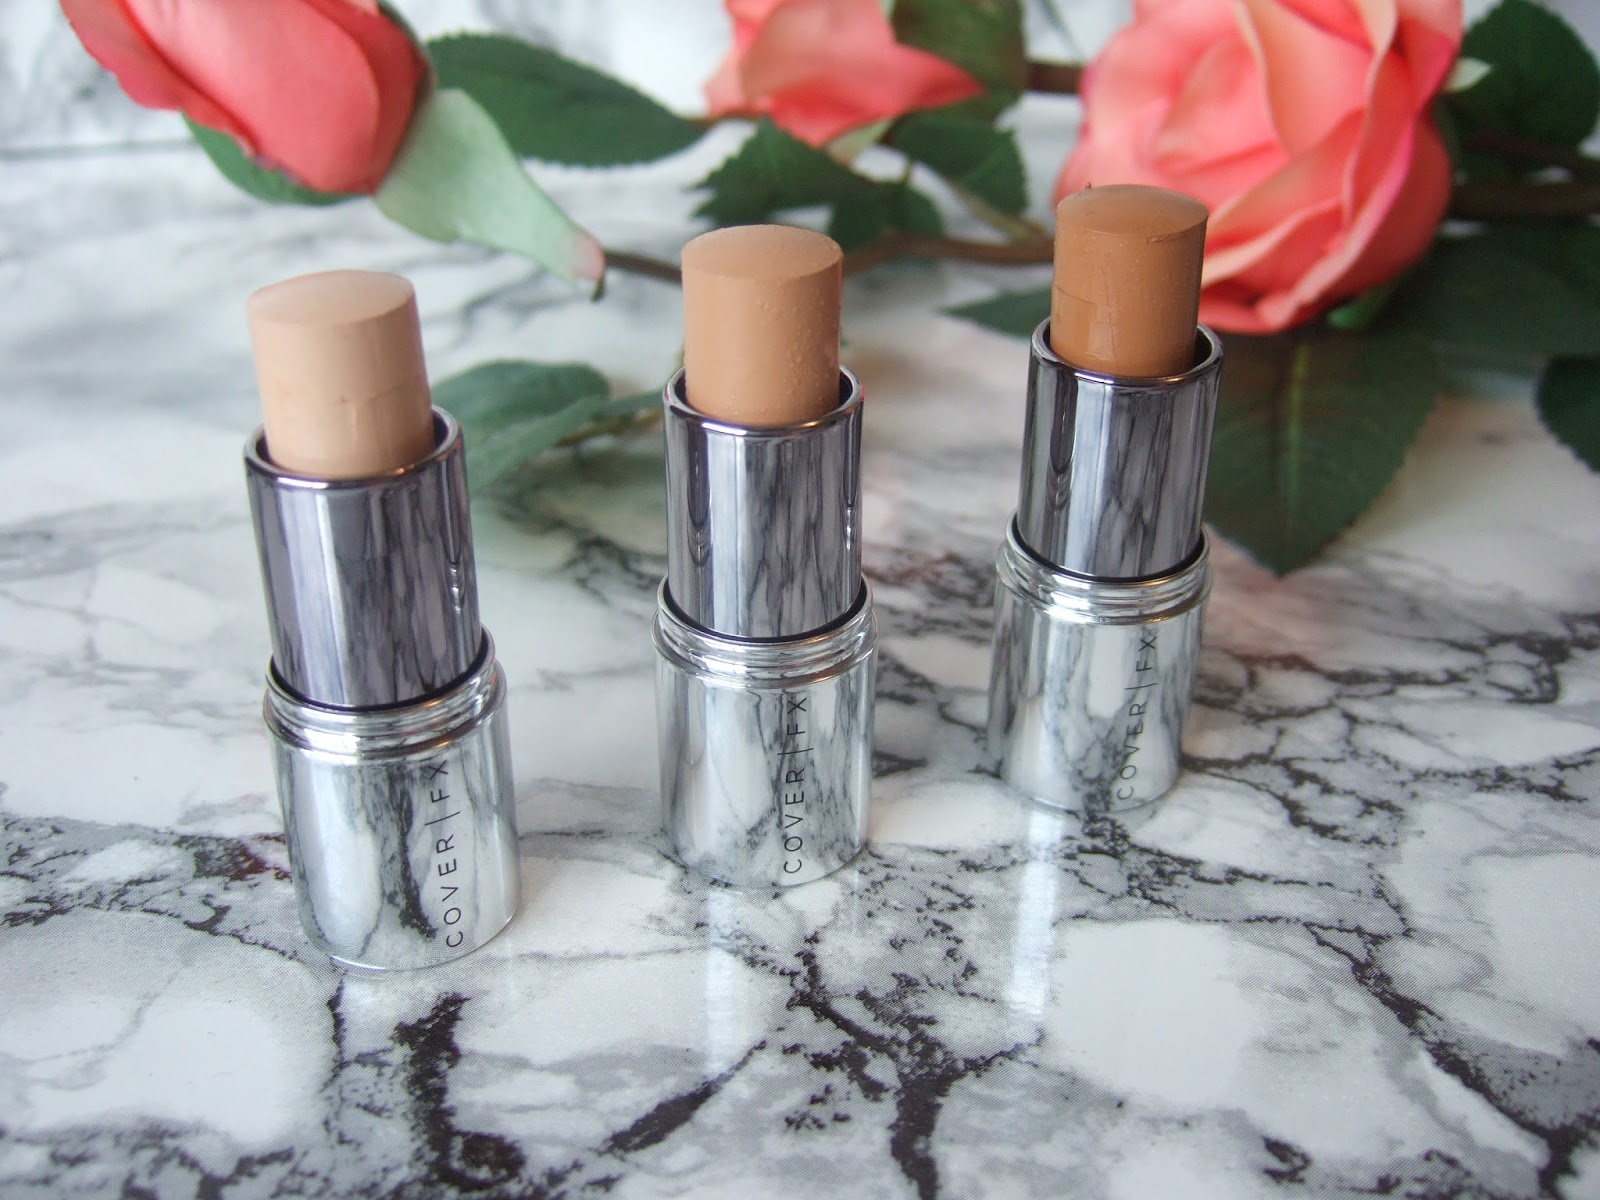 Cover FX Click Stick Cover Click Correct Click Enhance Click Review Swatches Before and After